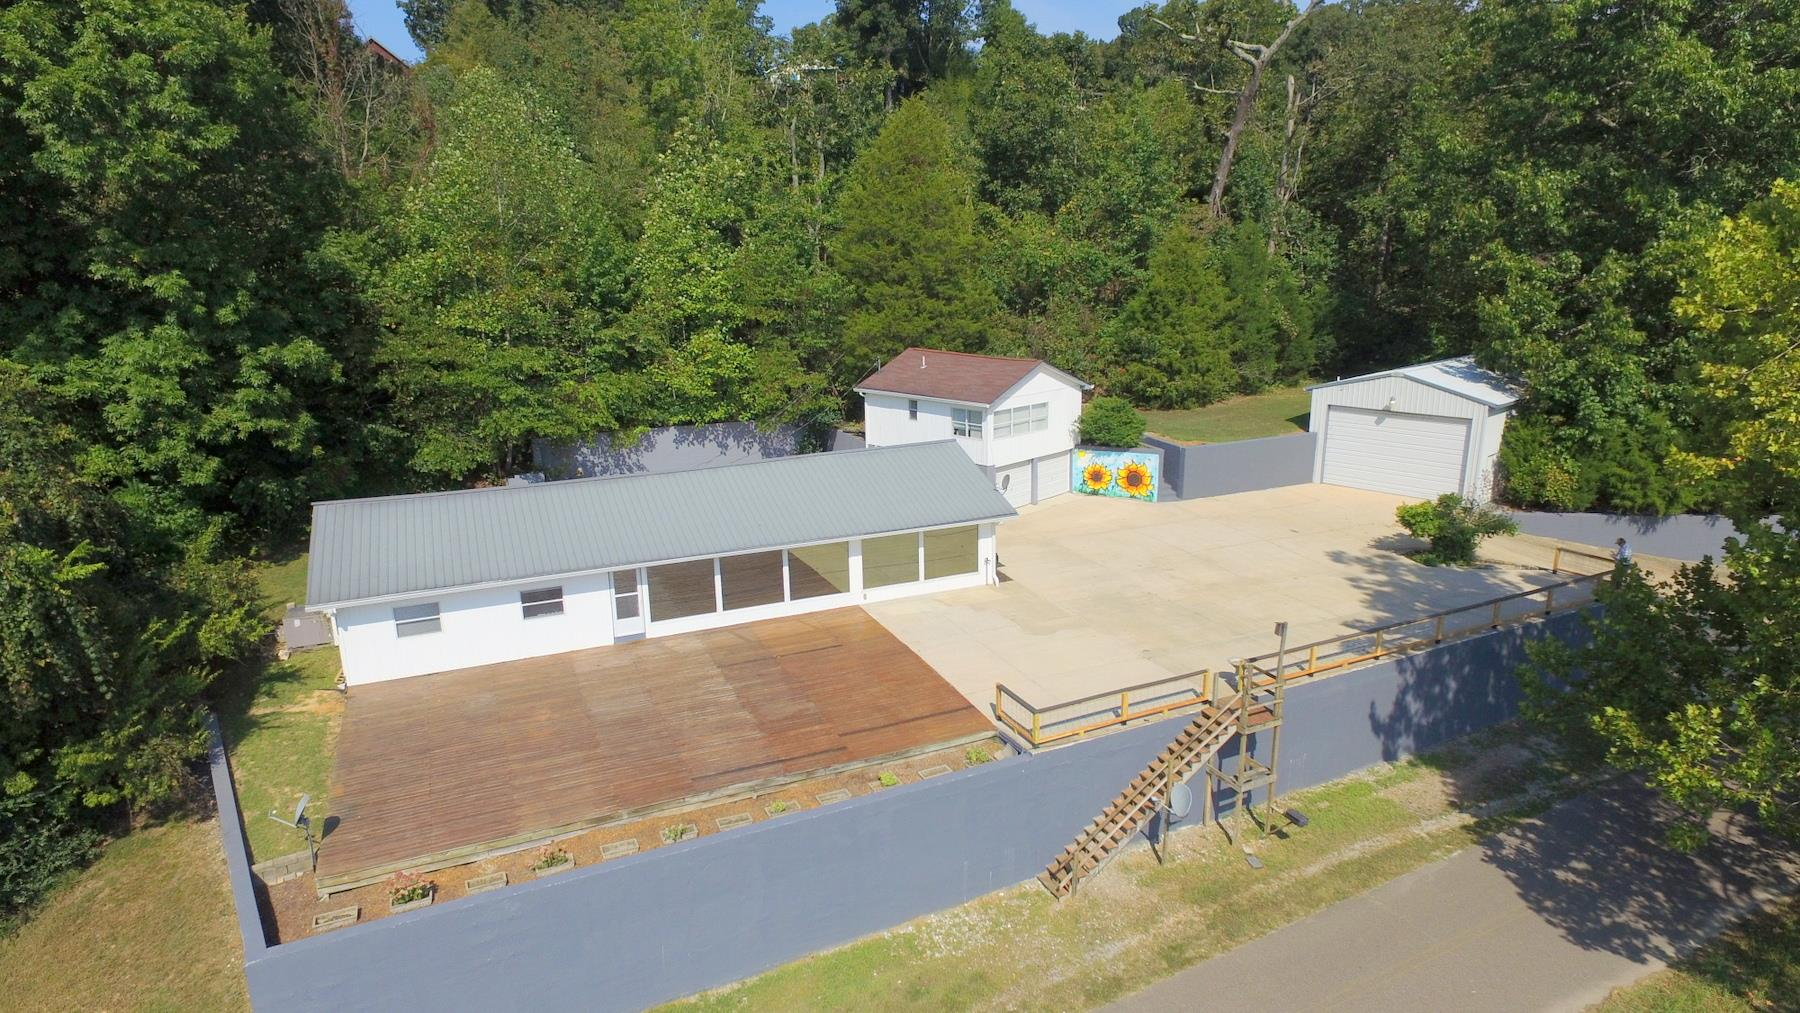 177 Bluebell Ln Property Photo - Camden, TN real estate listing